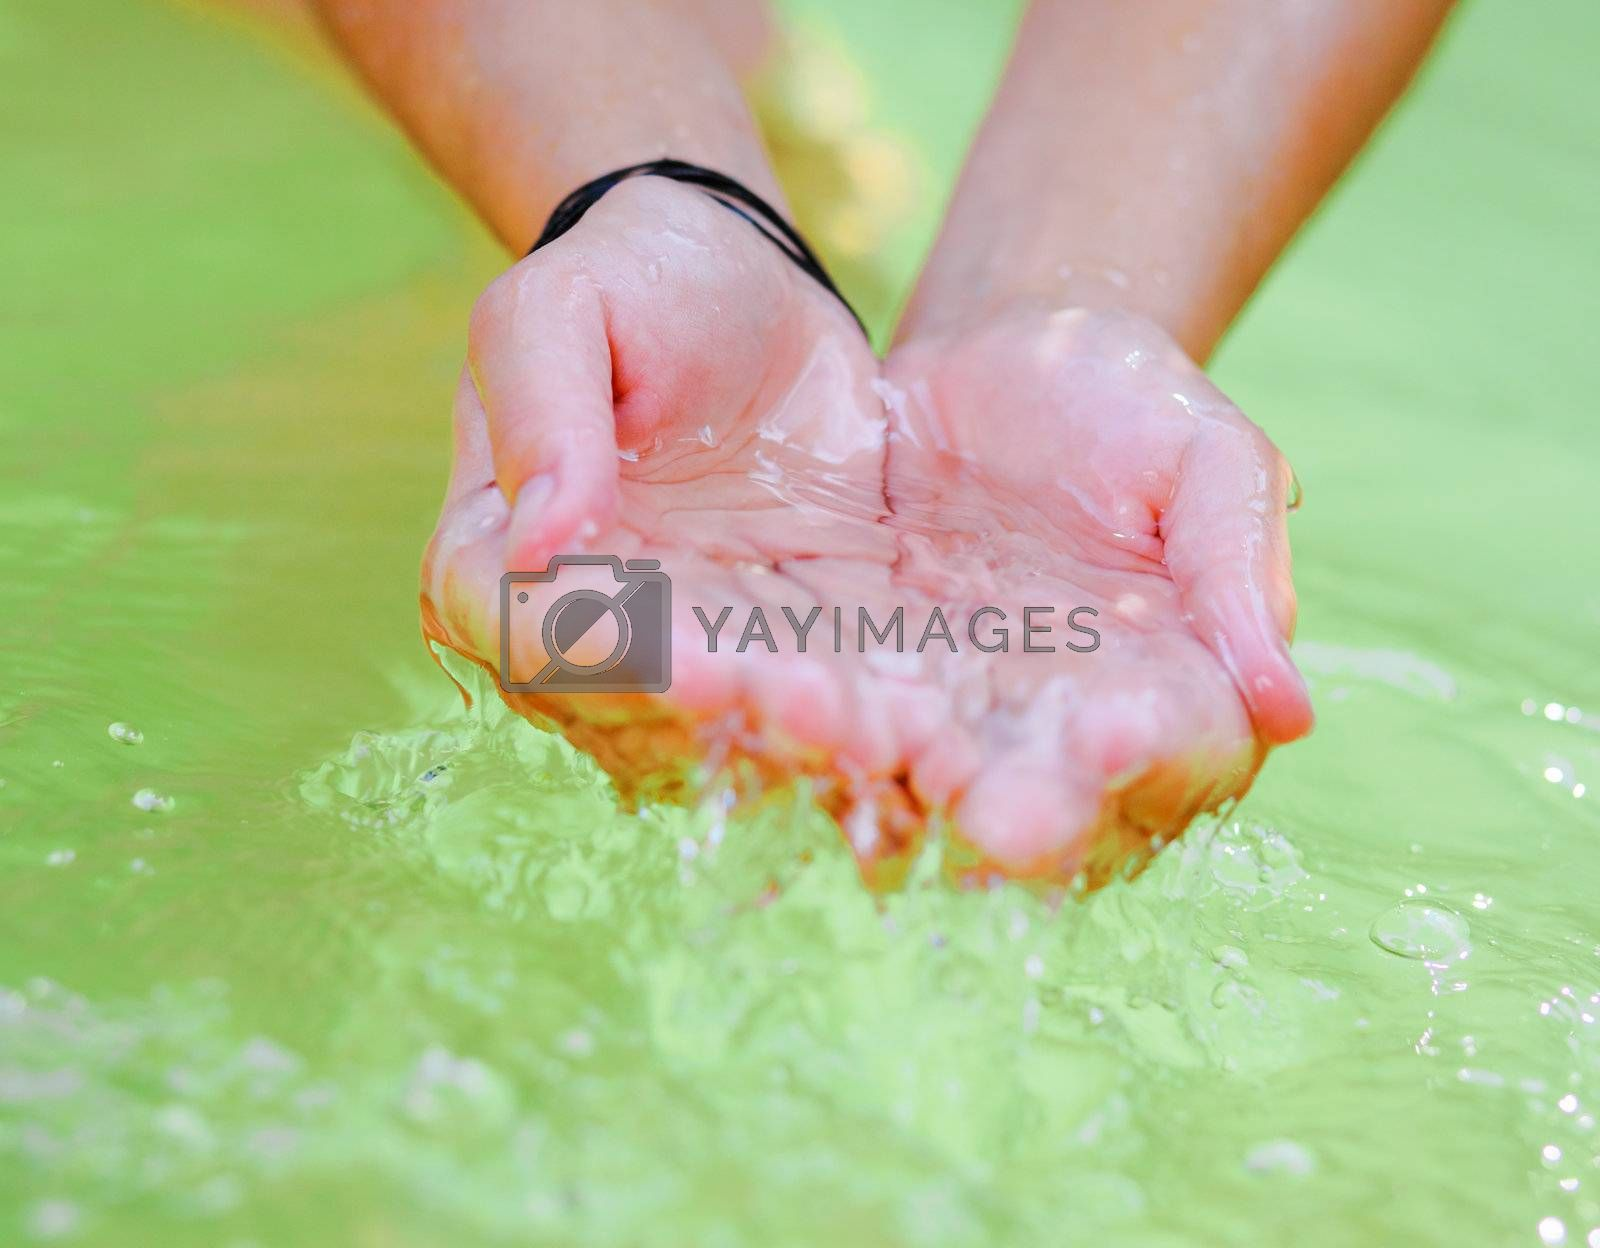 Woman's hands playing with fresh water